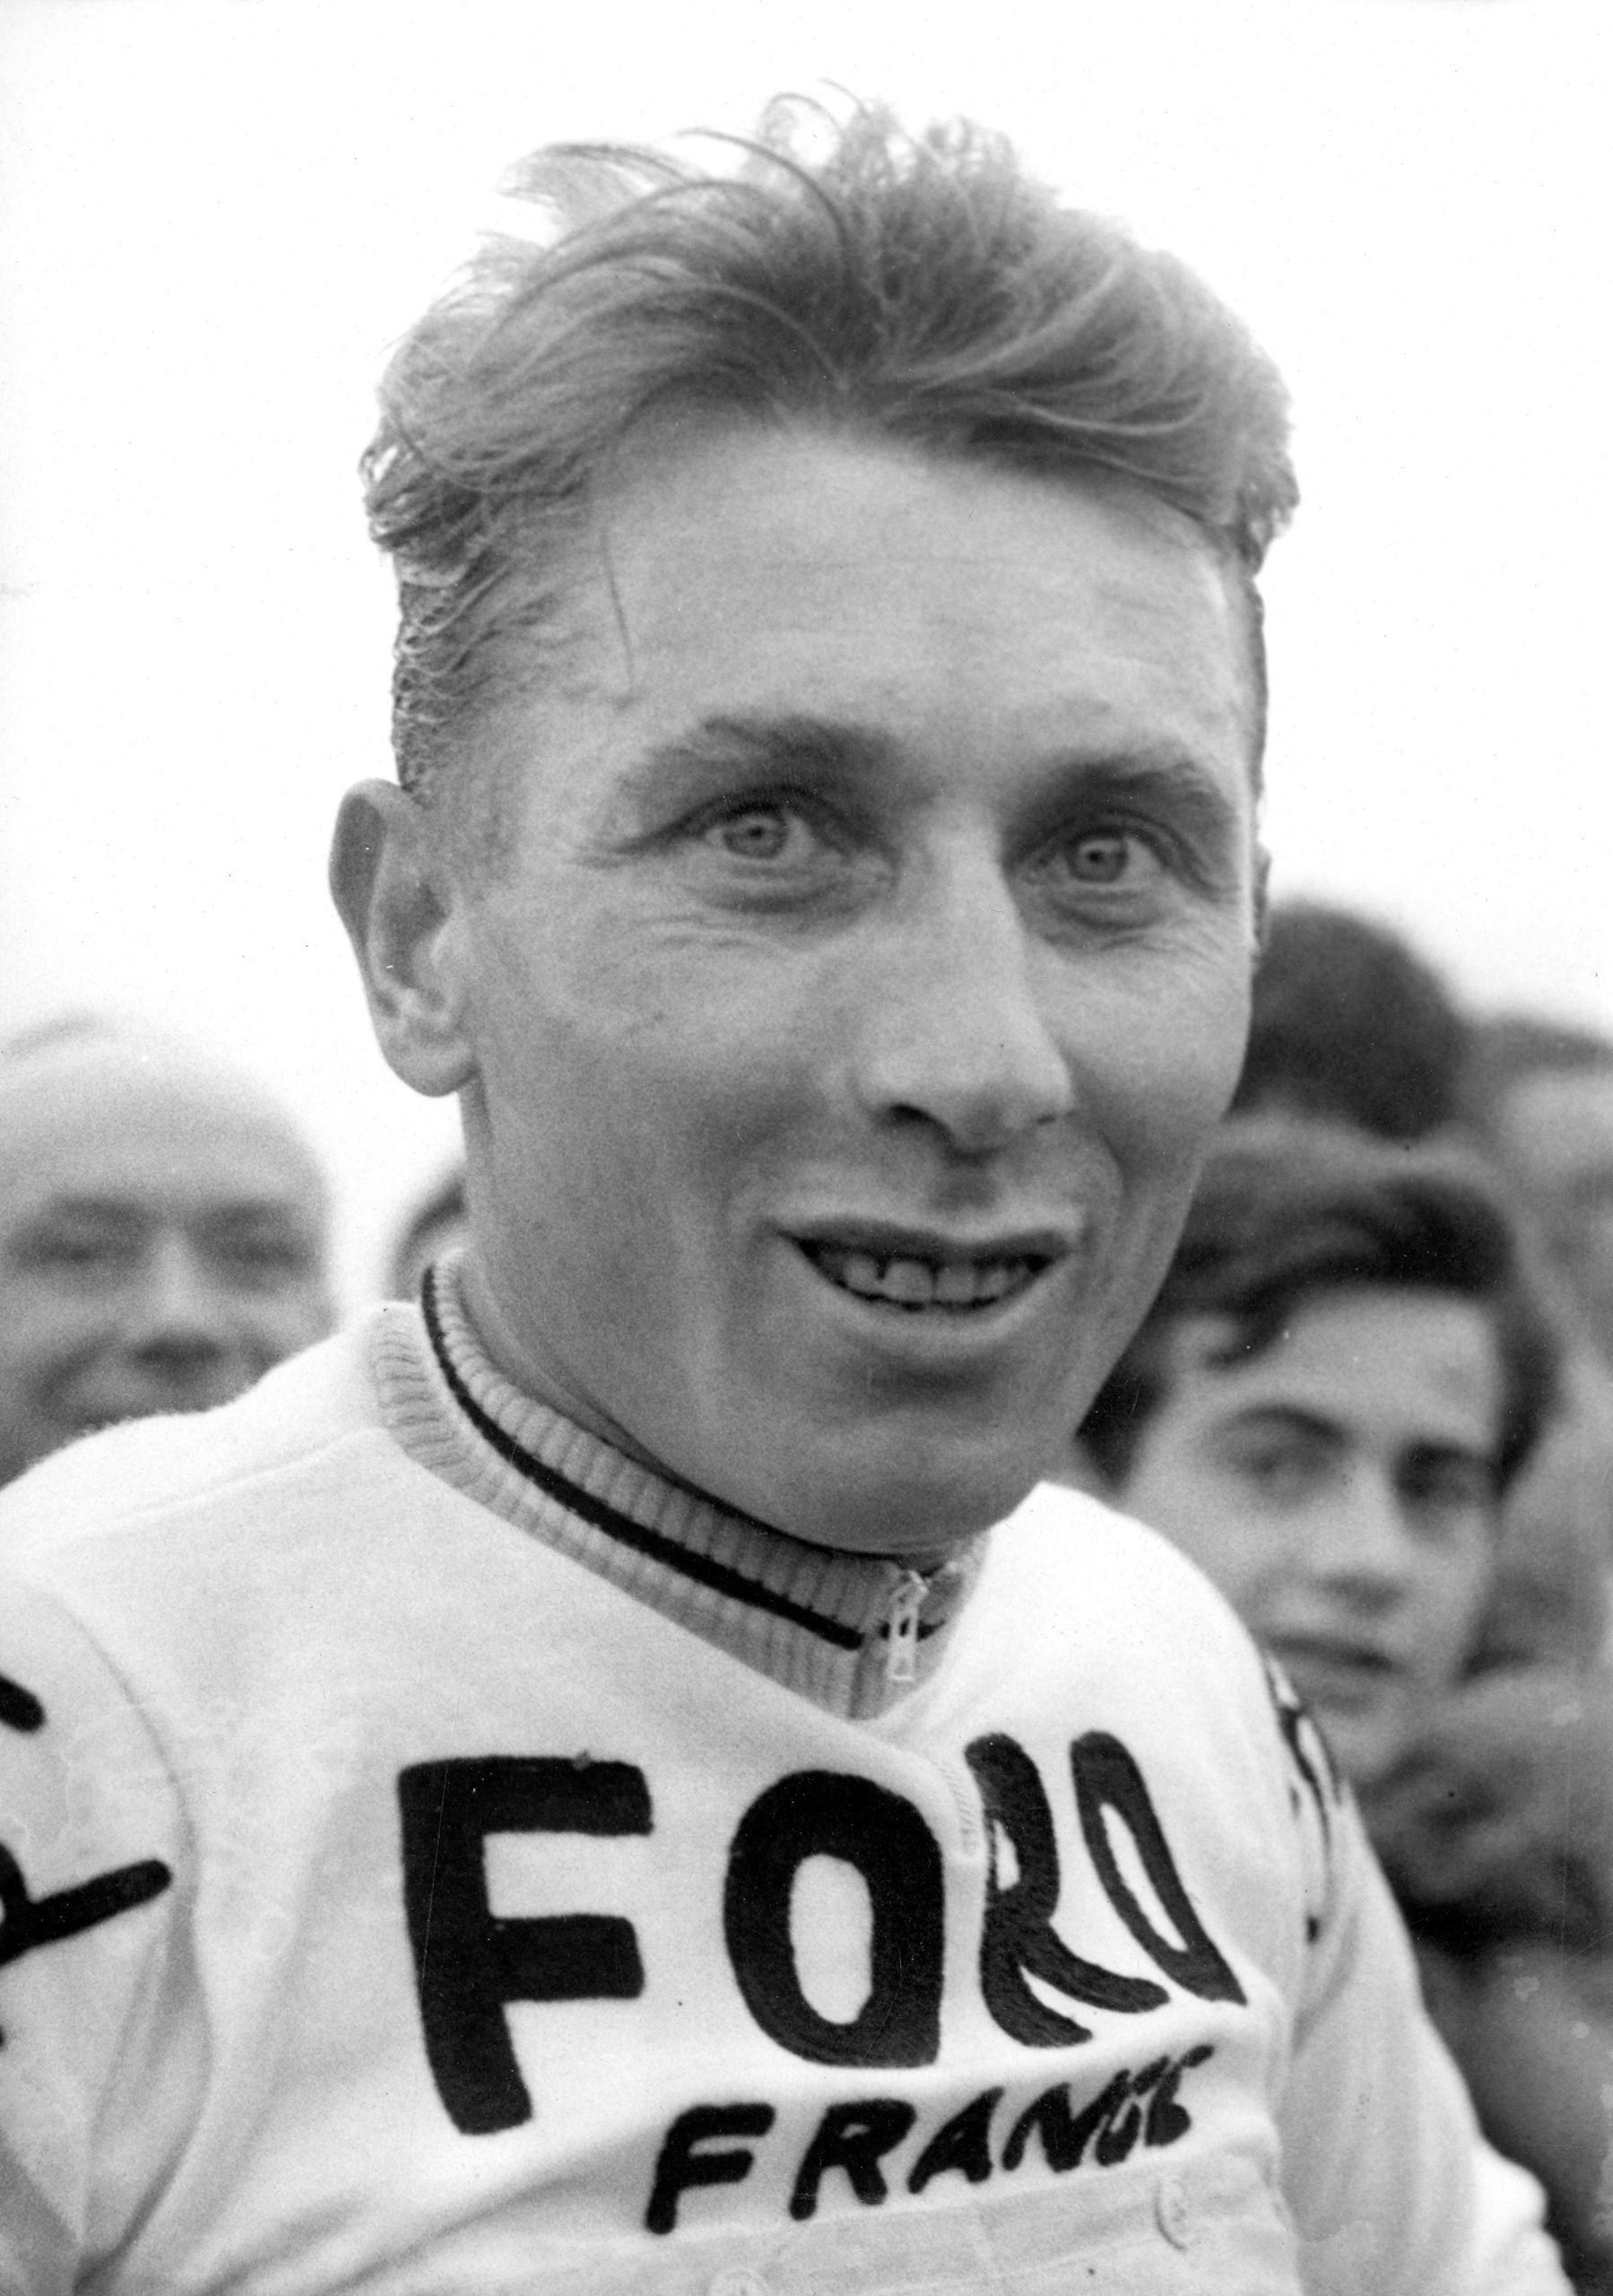 ph003033---1965-or-1966---Anquetil